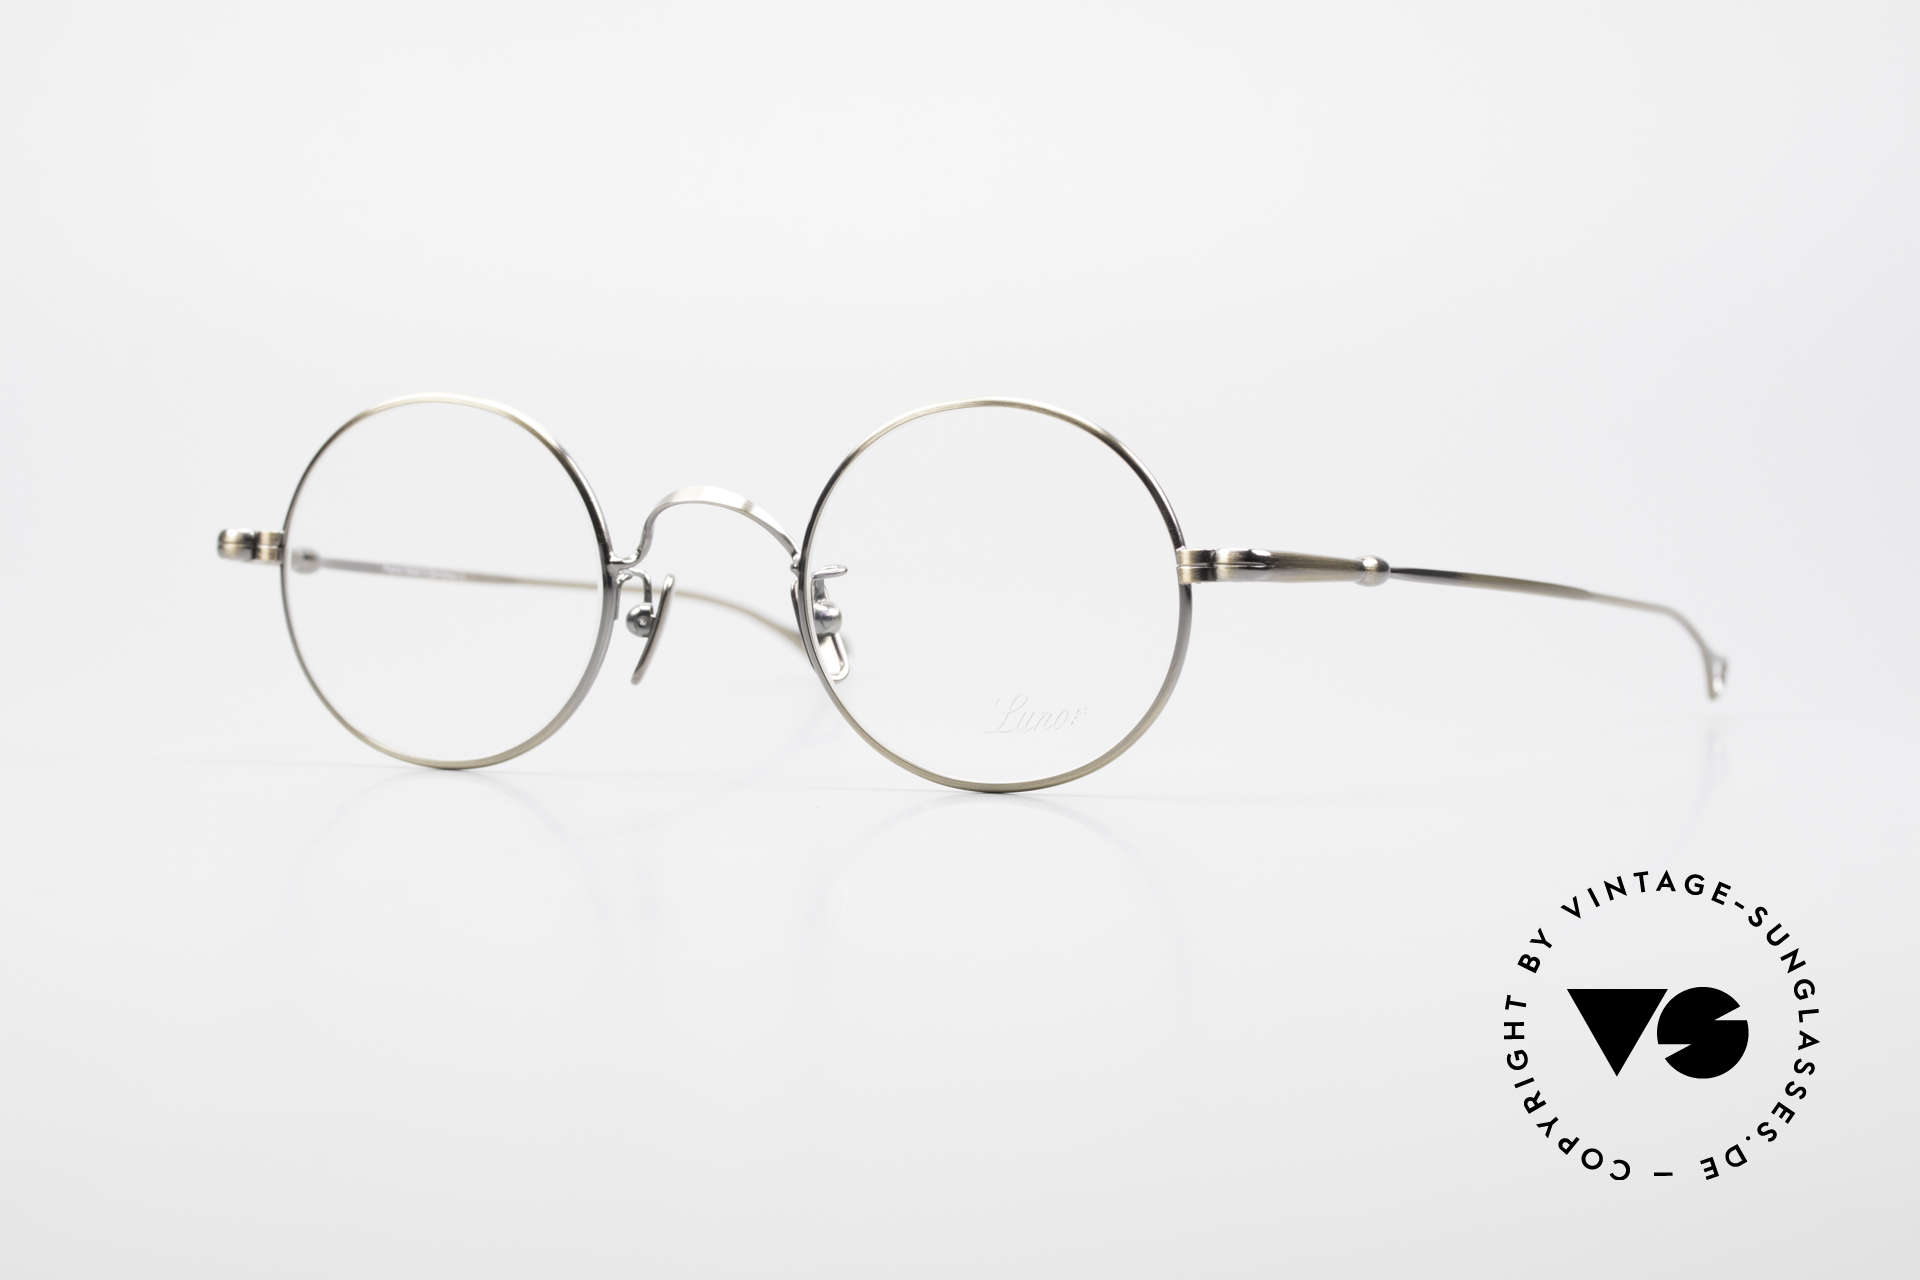 Lunor V 110 Round Lunor Glasses Vintage, round Lunor metal glasses with pads made of pure titan, Made for Men and Women